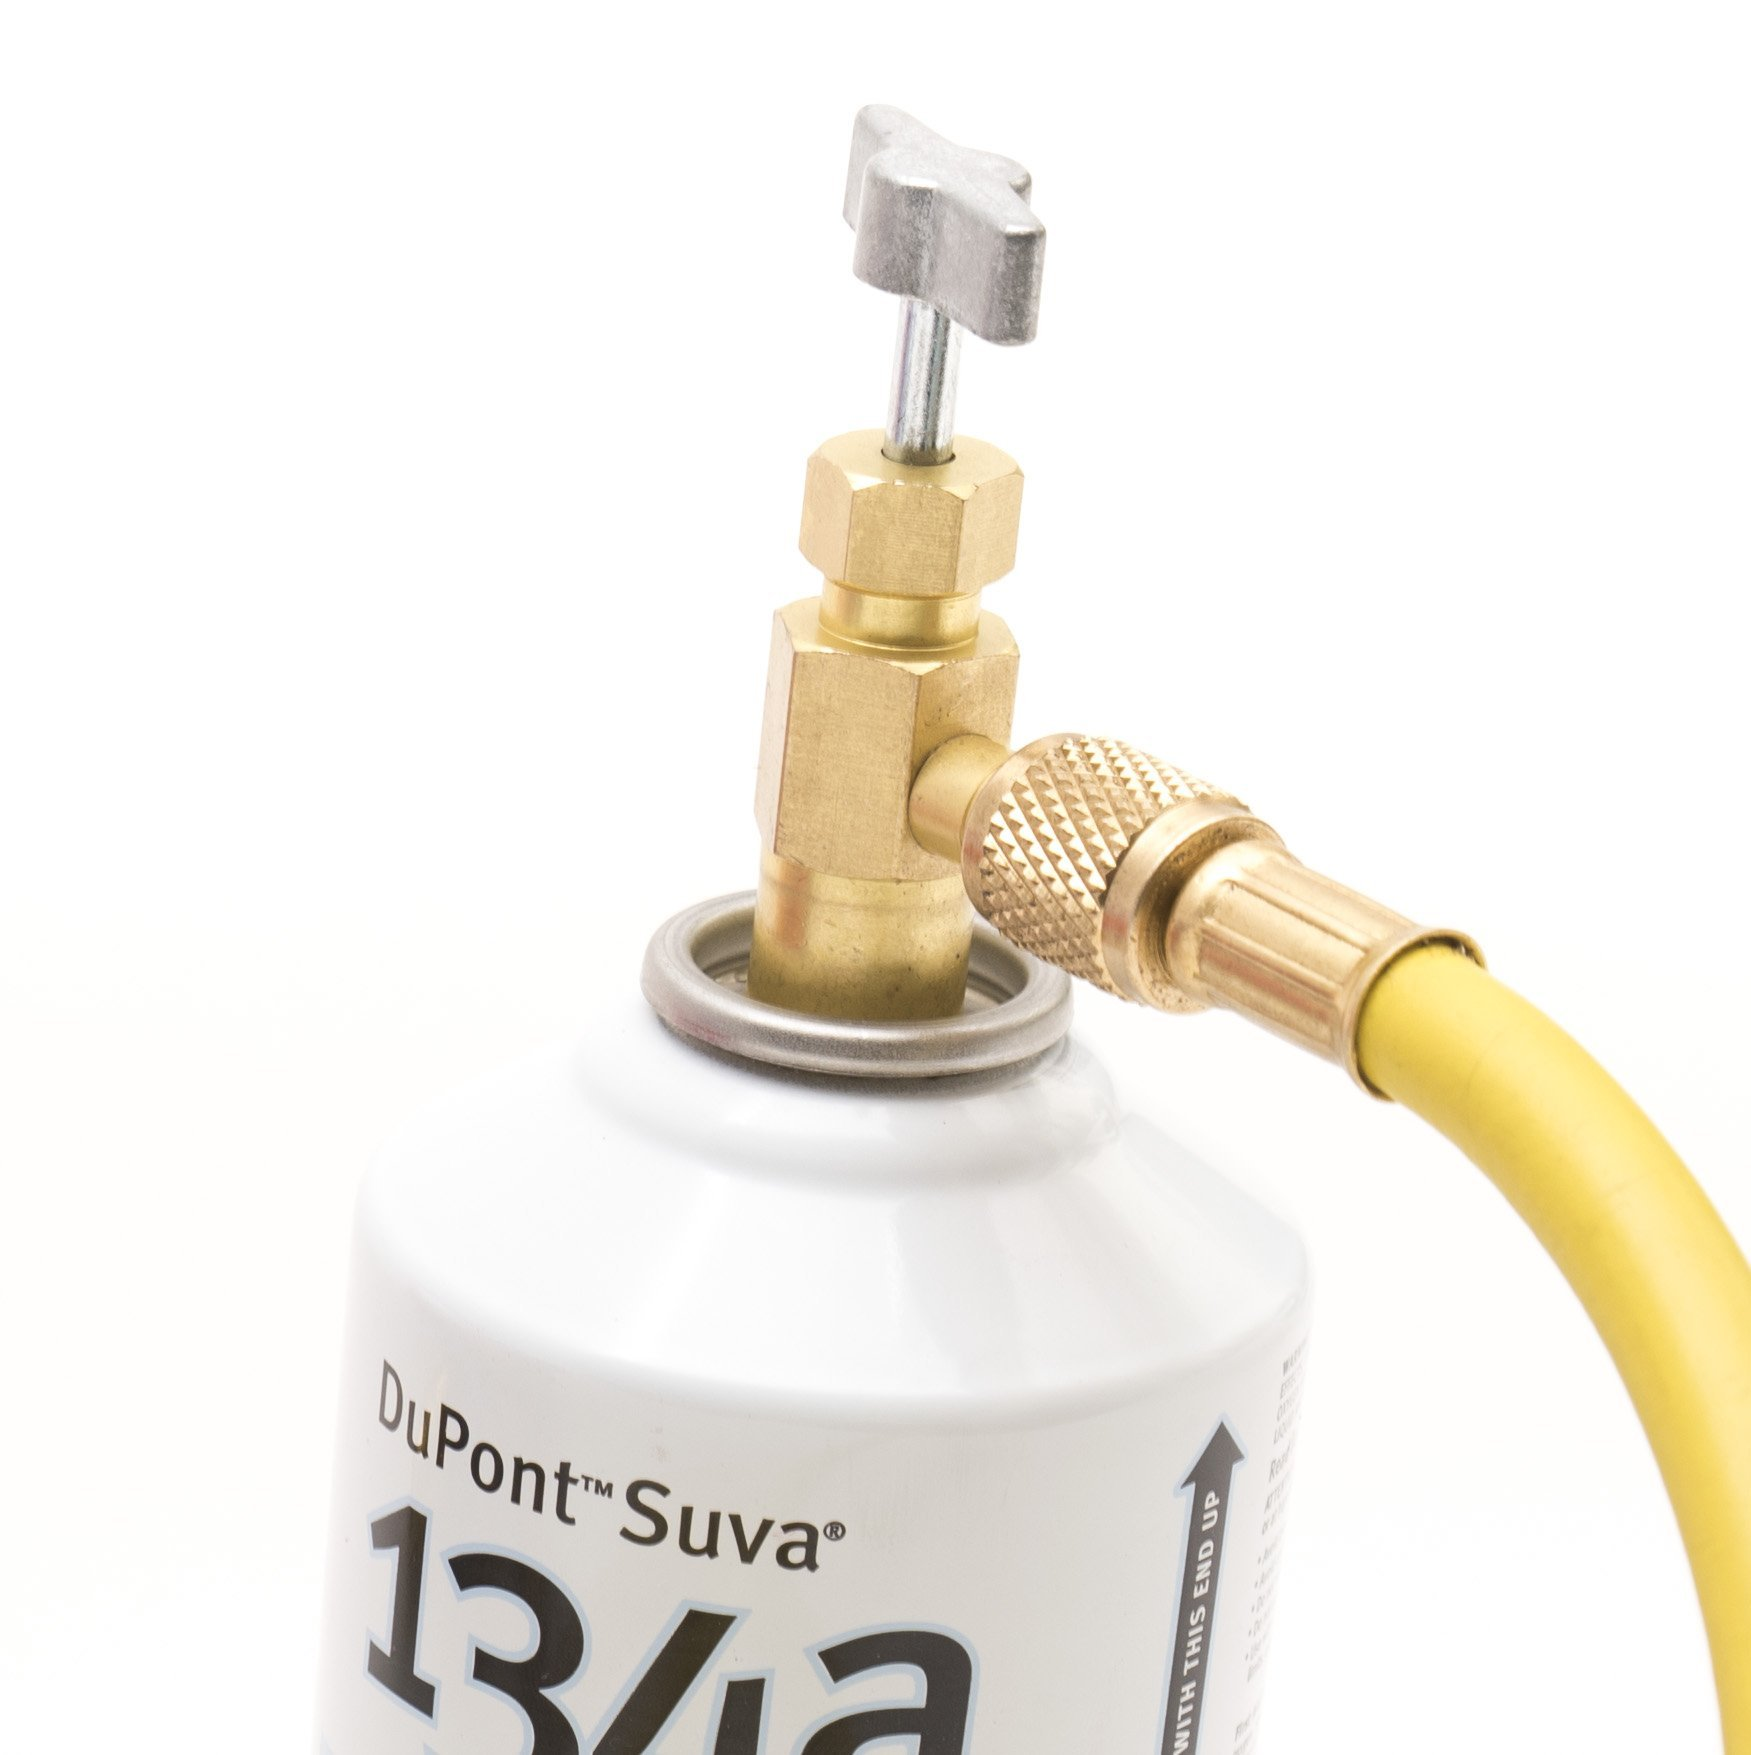 Kozyvacu R134a Refrigerant Self-Piercing Can Tap Valve with 1/4 Flare port for AUTO AC recharging, Easily connecting with Quick Coupler by Kozyvacu (Image #1)